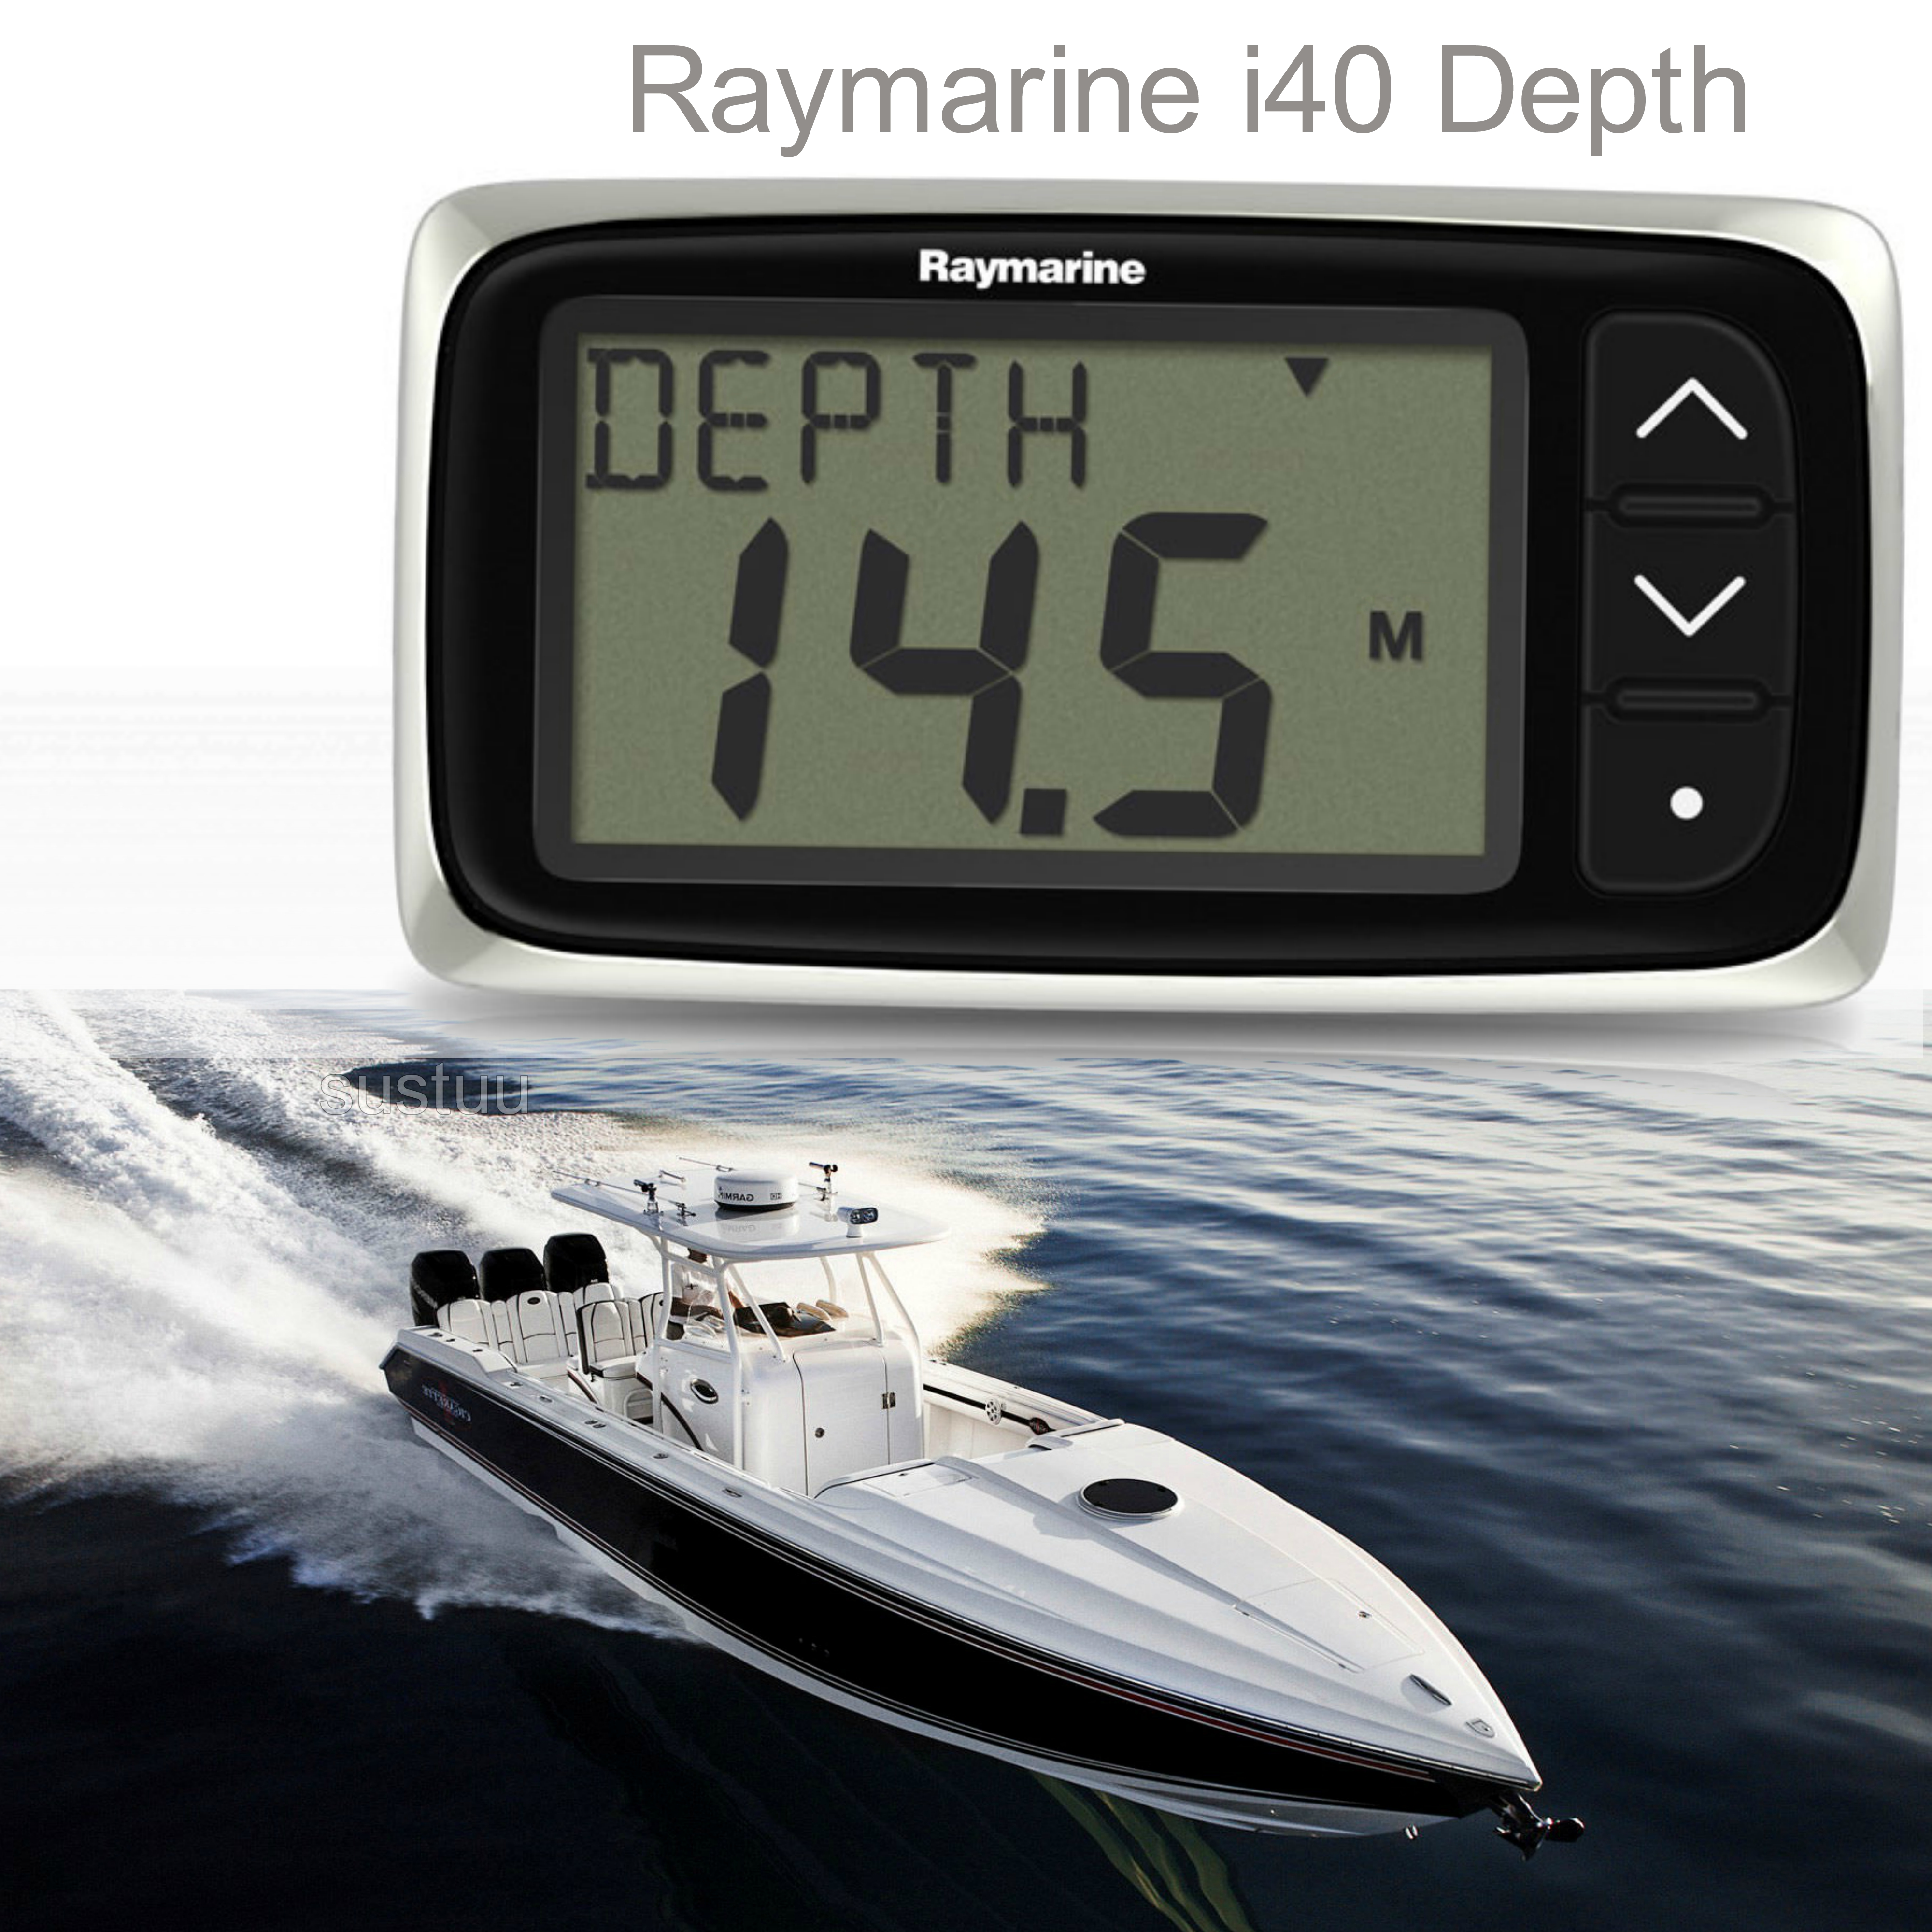 Raymarine E70064|i40 Depth Instrument Display|Sharp LCDs|Low Power|For Yacht & Ribs